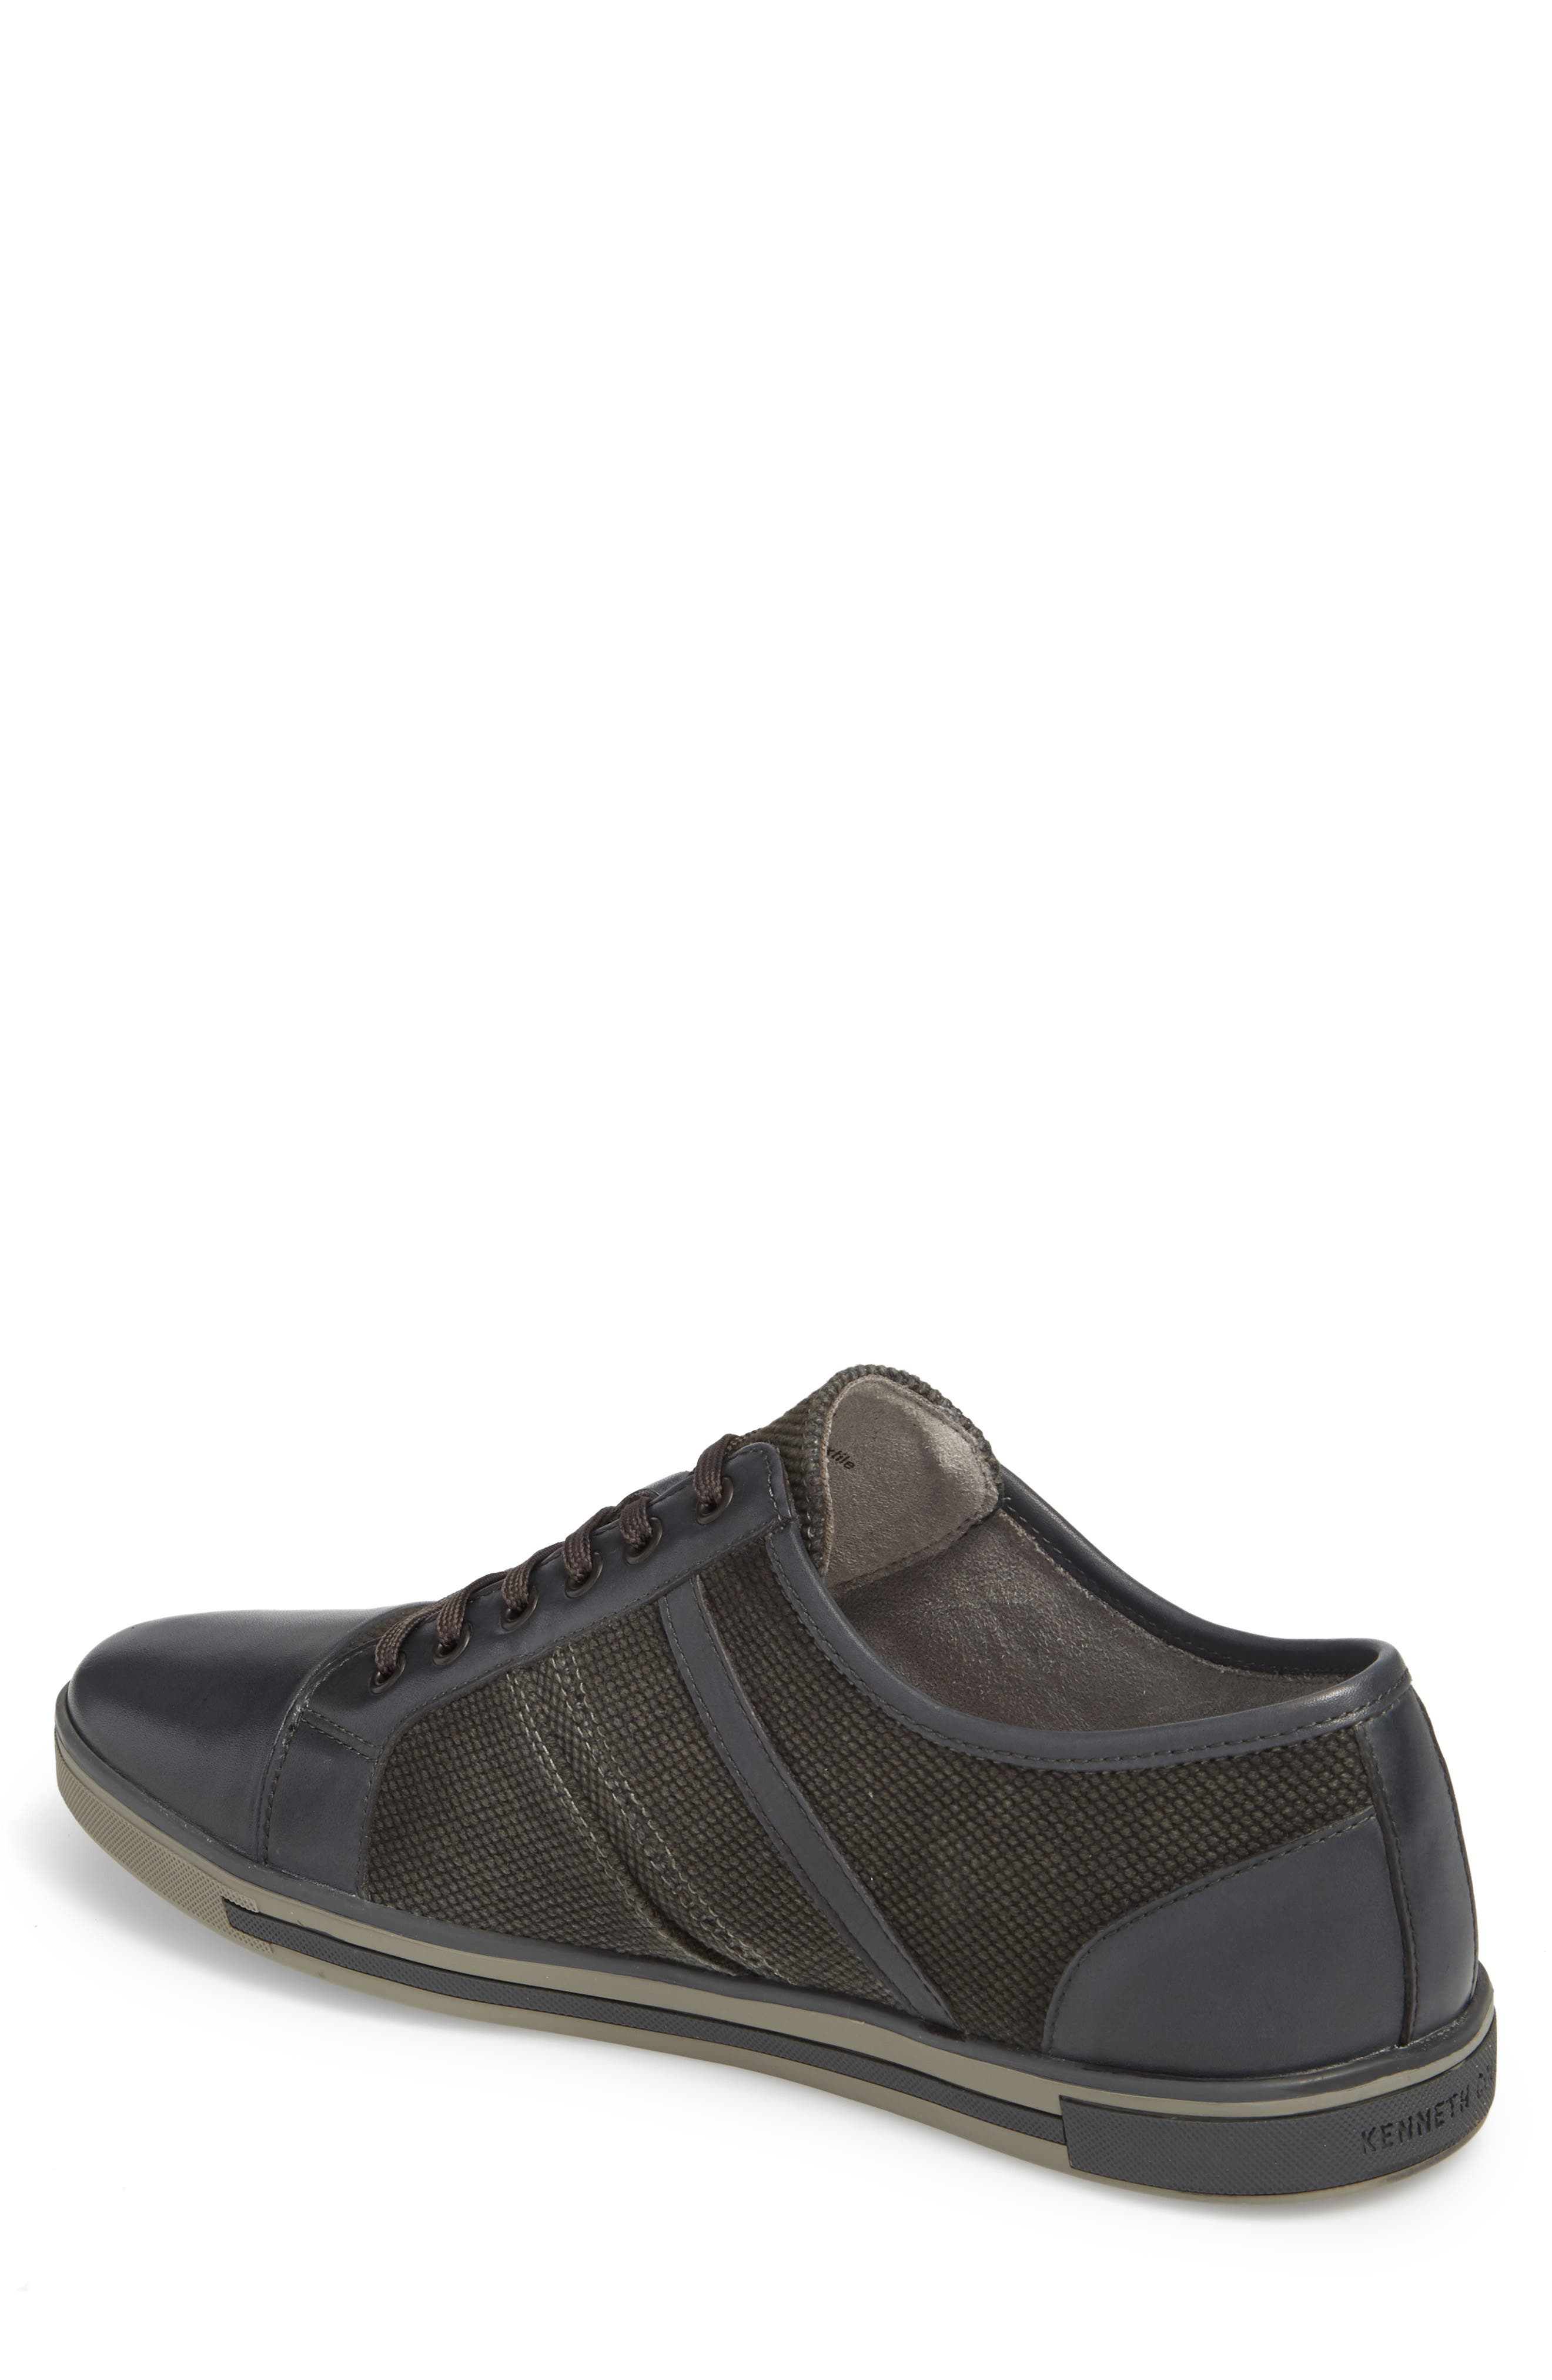 Initial Step Sneaker,                             Alternate thumbnail 2, color,                             Grey Leather/ Textile